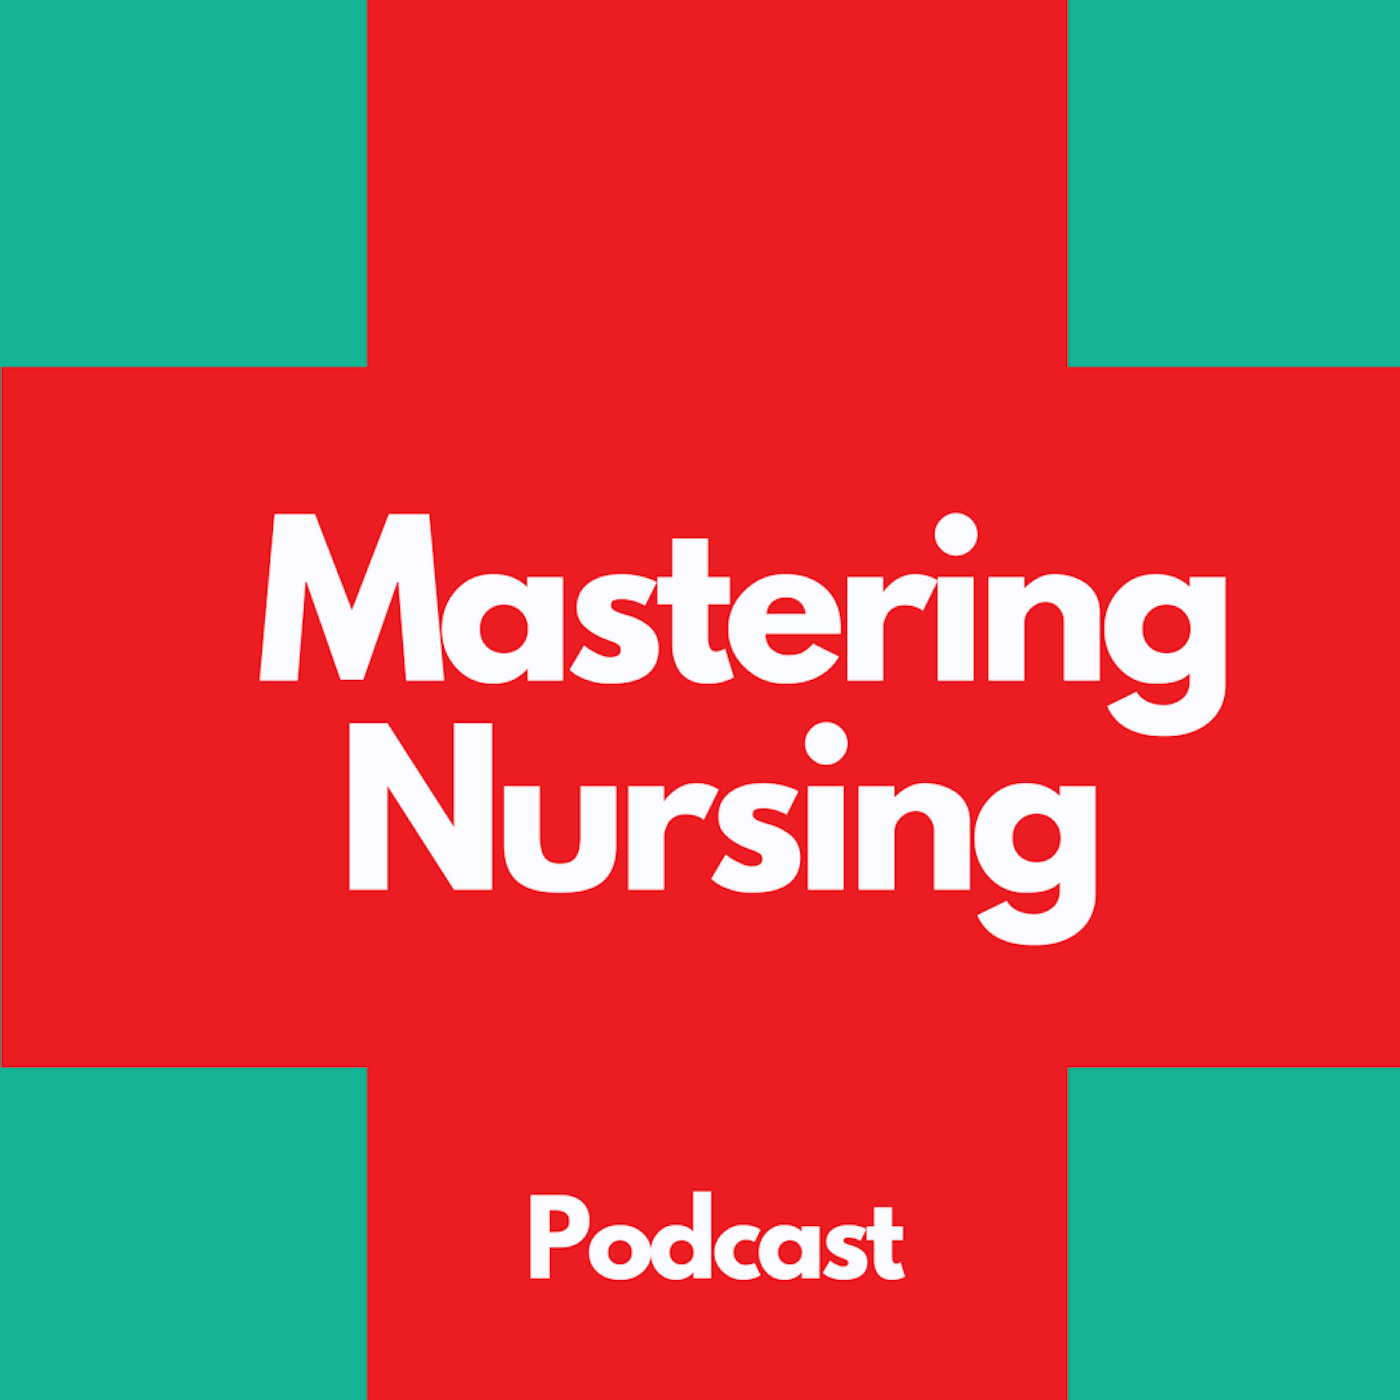 The Mastering Nursing Podcast